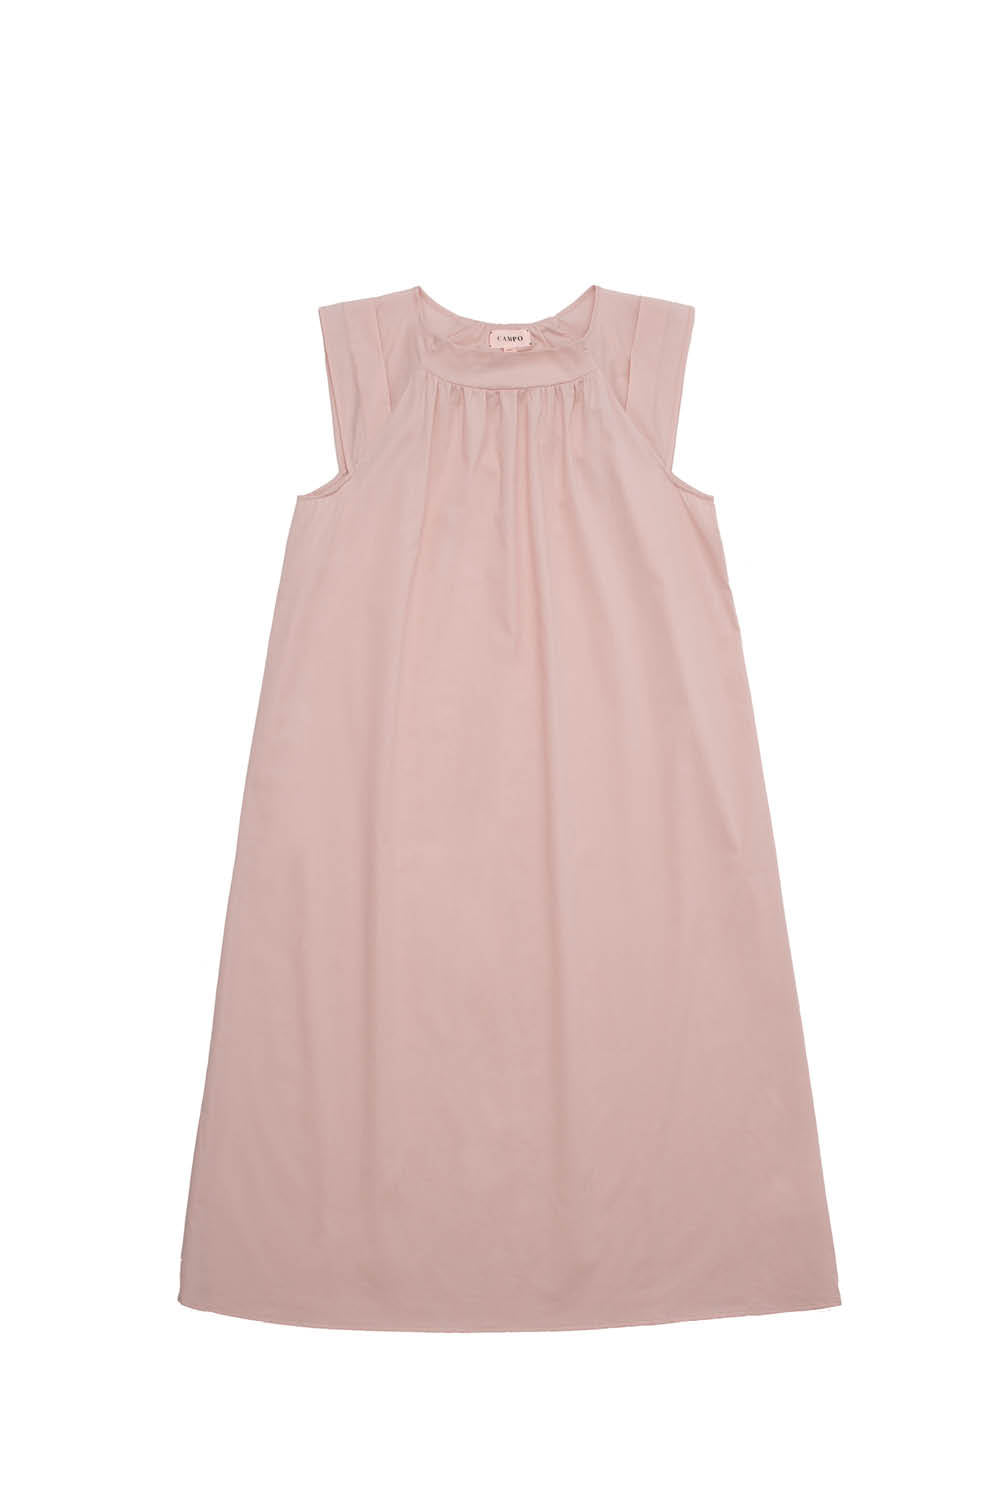 Chloe Nightgown in Dusty Pink